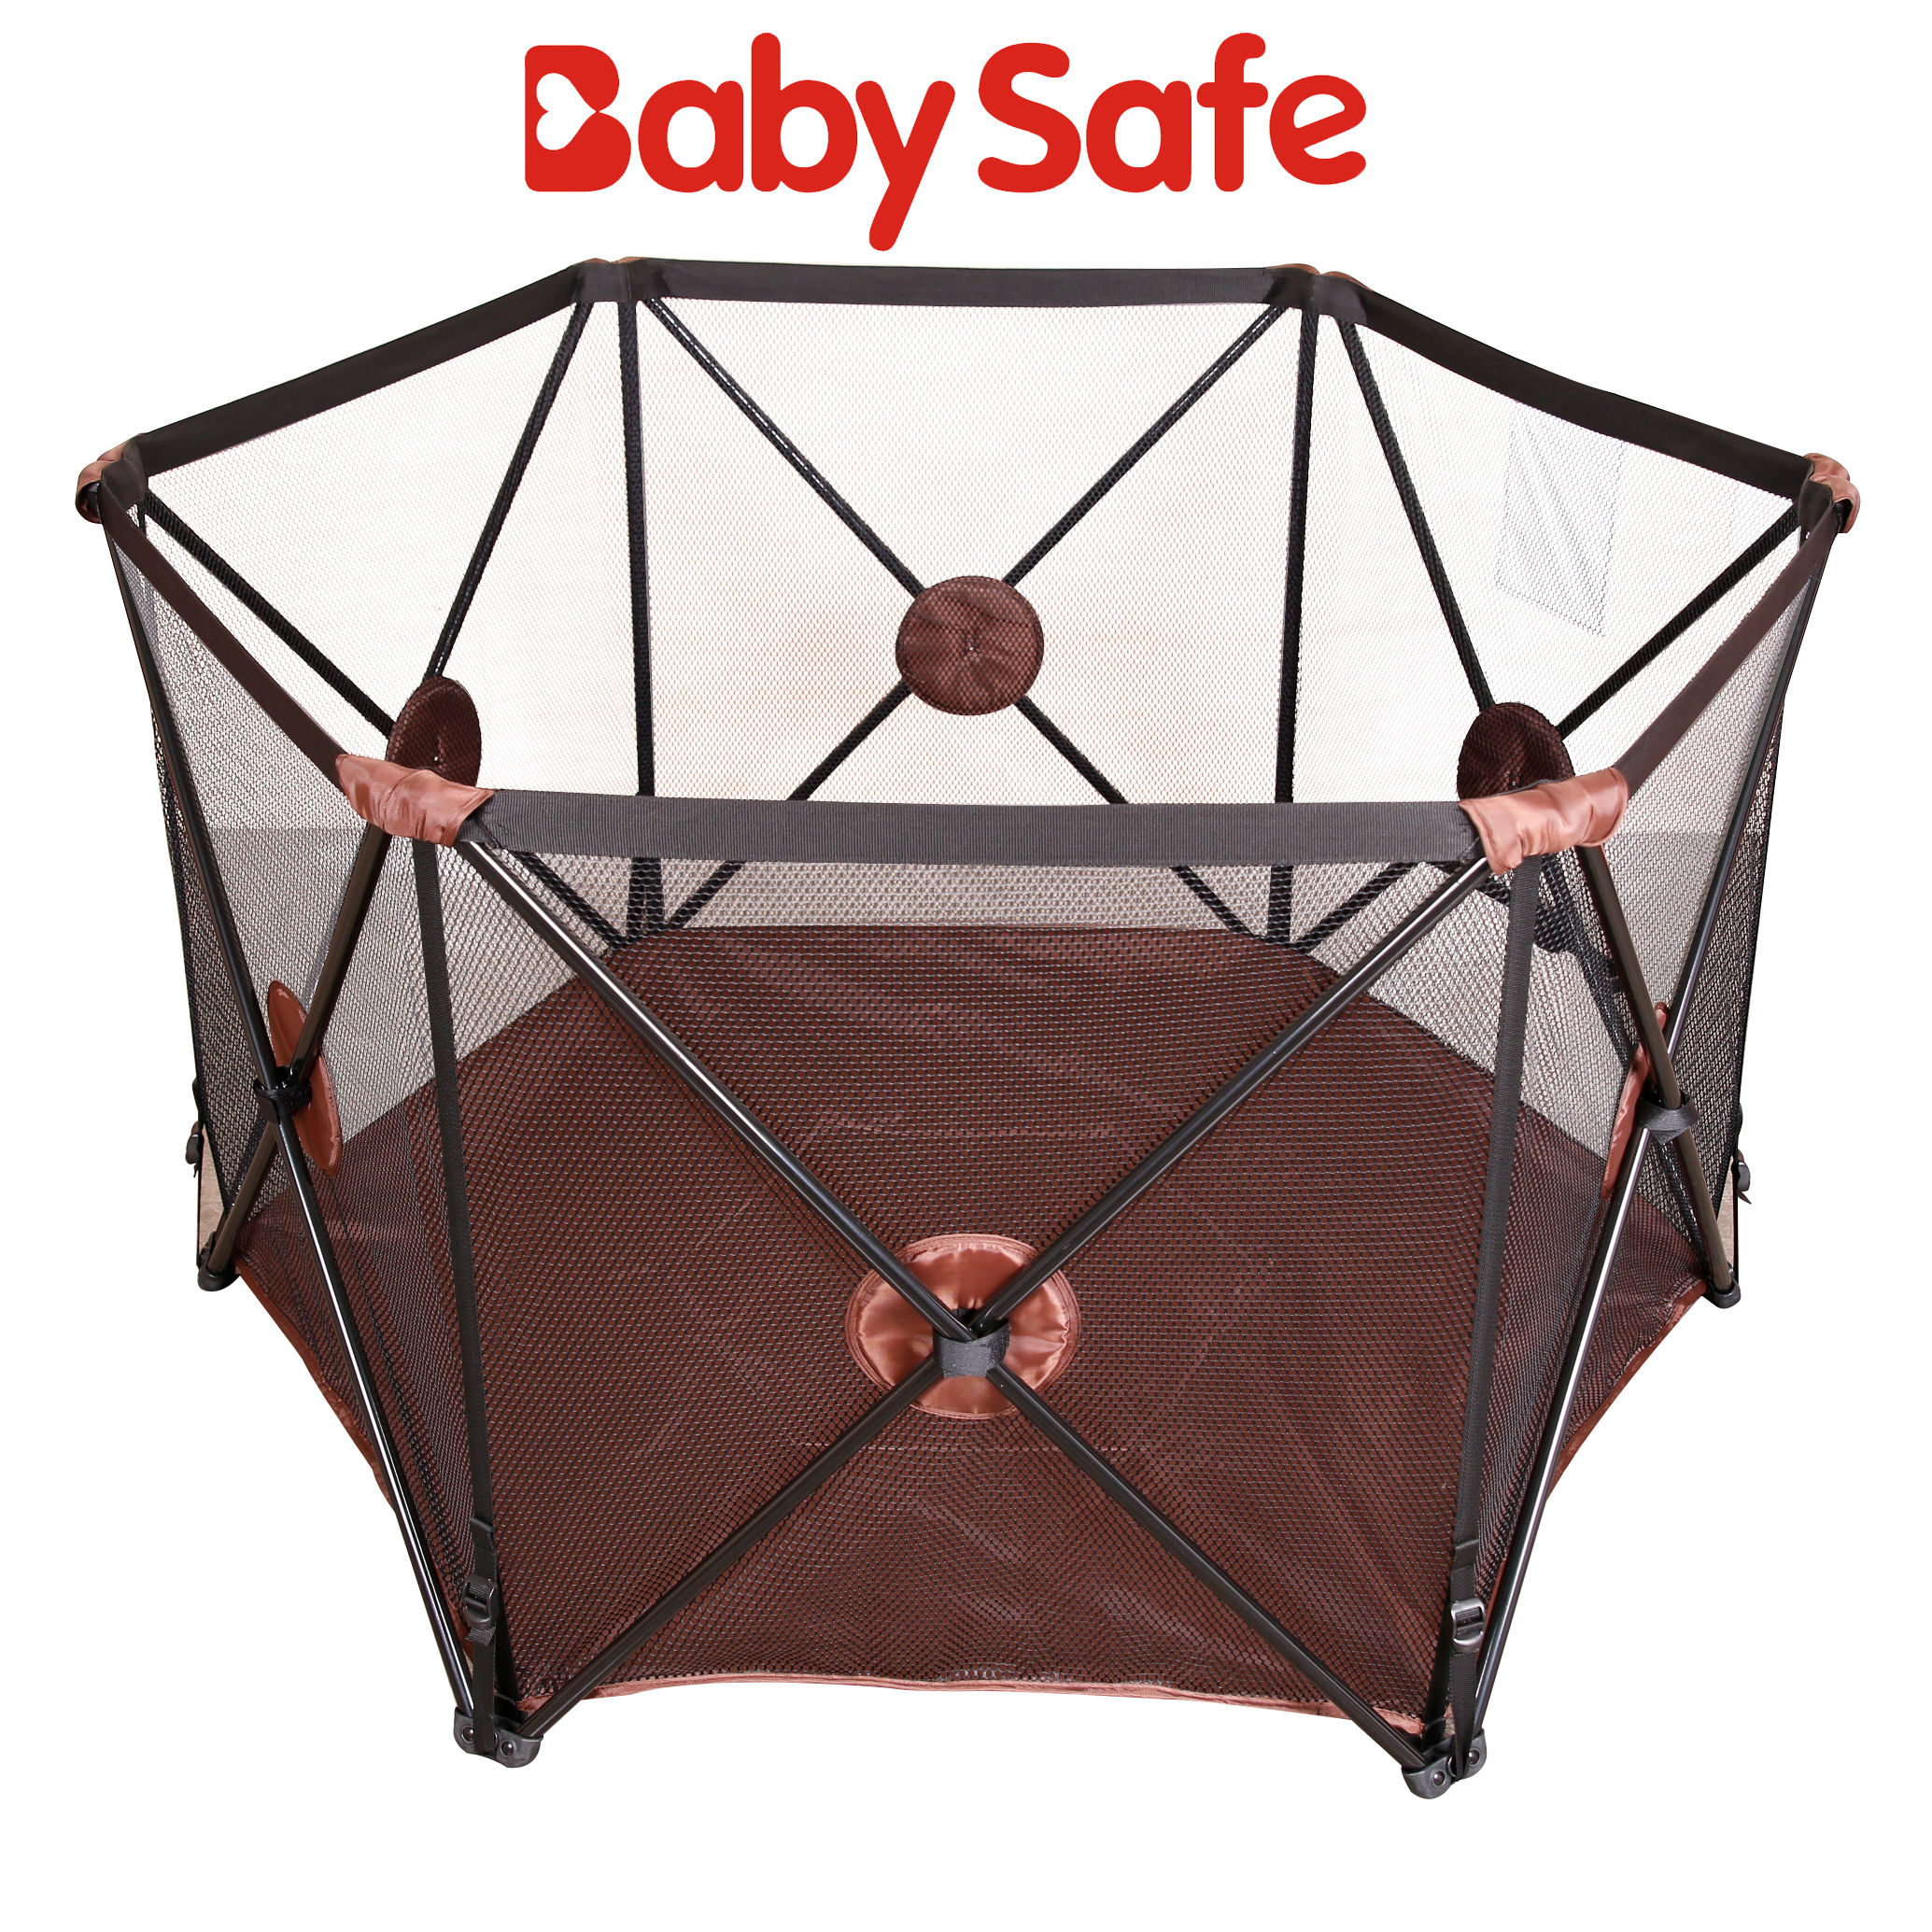 Playpen Babysafe OEM ODM Baby Products Safety Kittens Kids Playpen